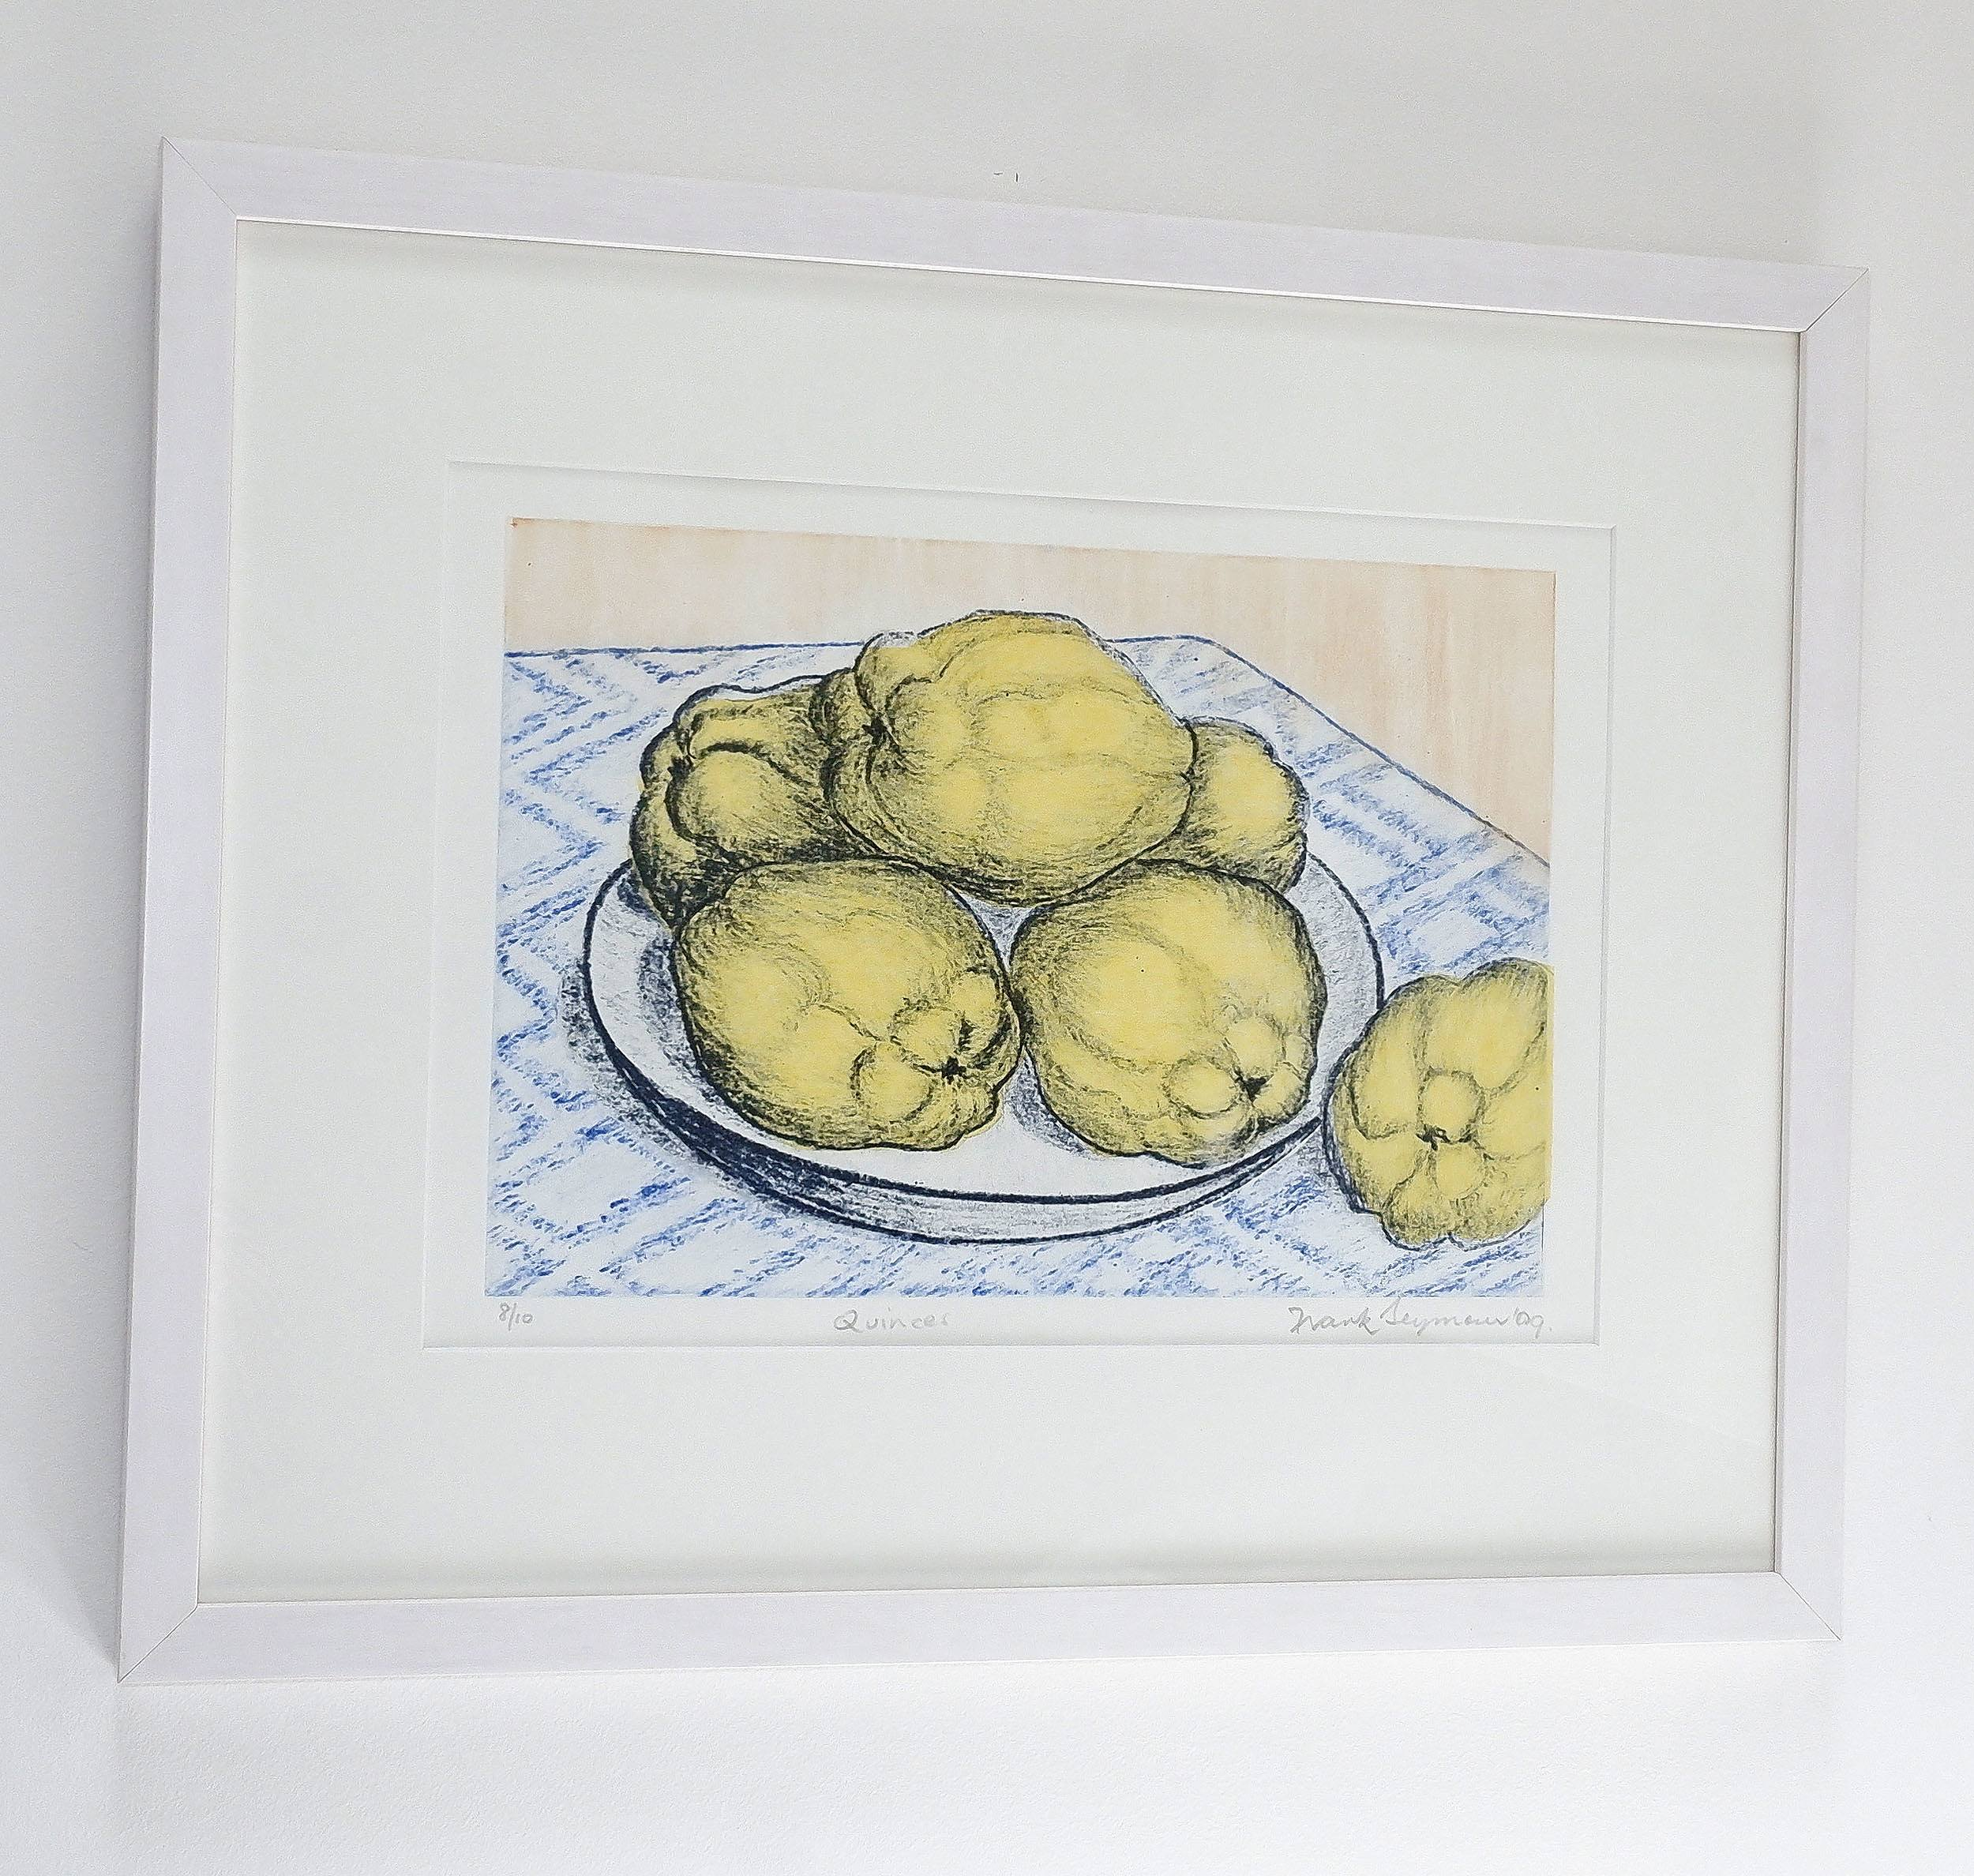 'Frank Seymour (20th Century, Australian), Quinces 2009, Photopolymer & Chine Colle '